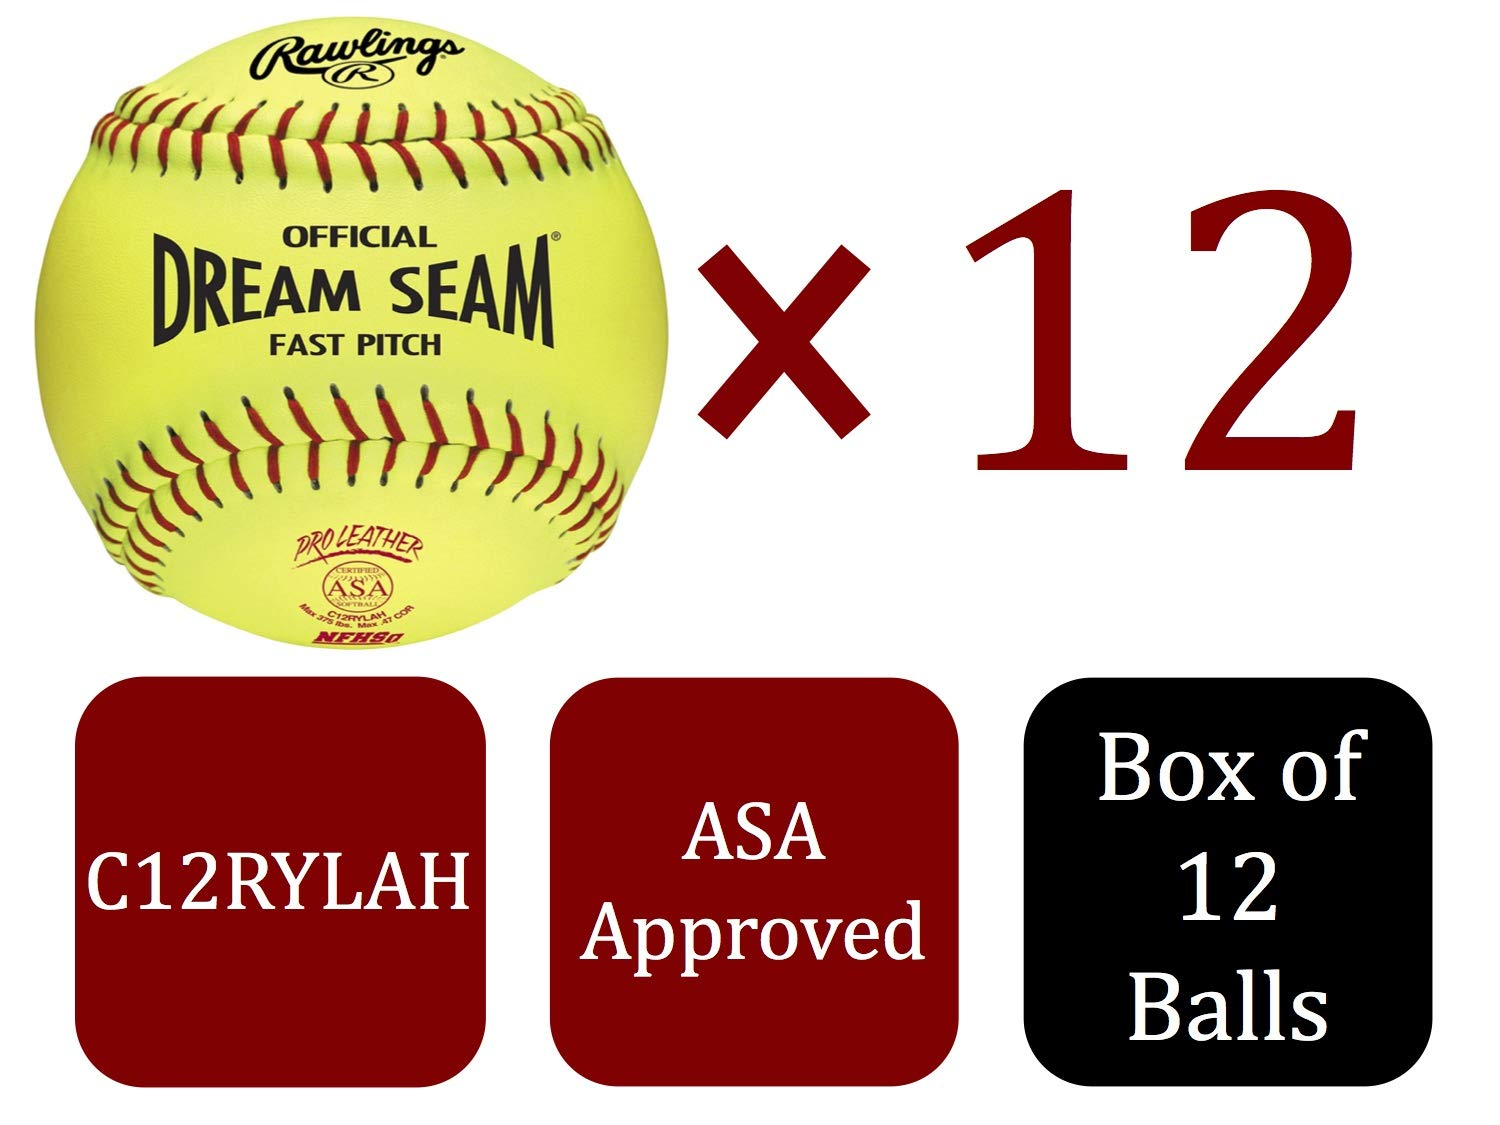 Rawlings Sporting Goods C12RYLAH Official ASA Dream Seam Fast Pitch Softballs (One Dozen), Yellow, Size 12 - Ctfitnesswear